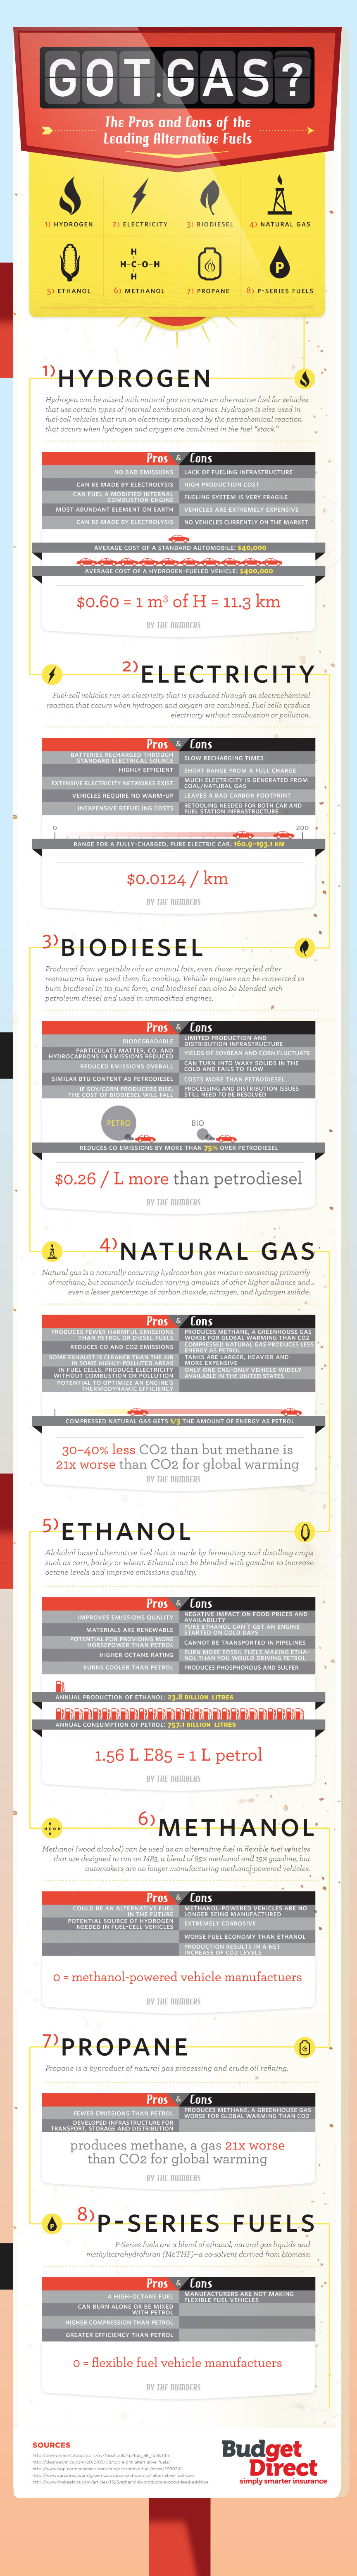 Got Gas? Pros and Cons of Leading Alternative Fuels